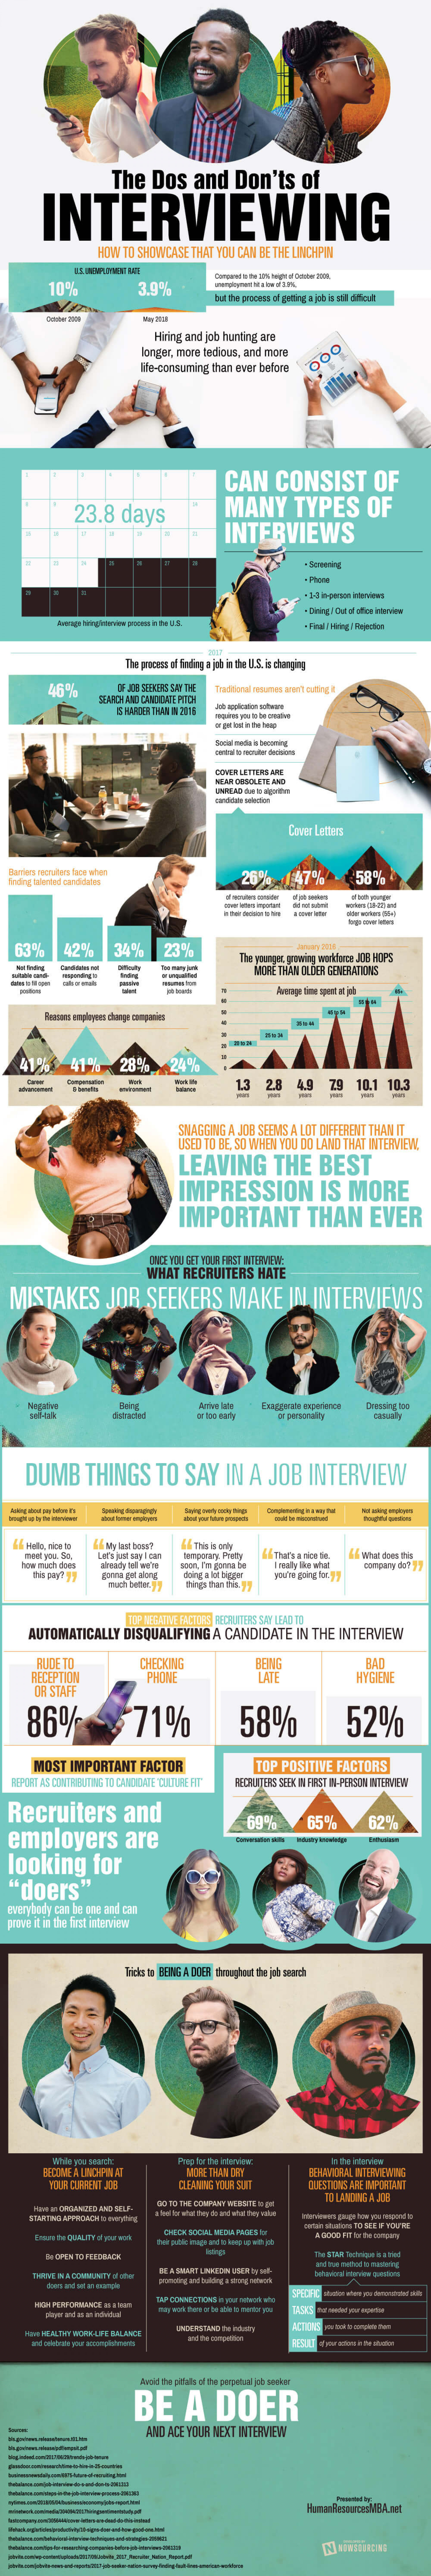 Dos and Don'ts of Interviewing Infographic